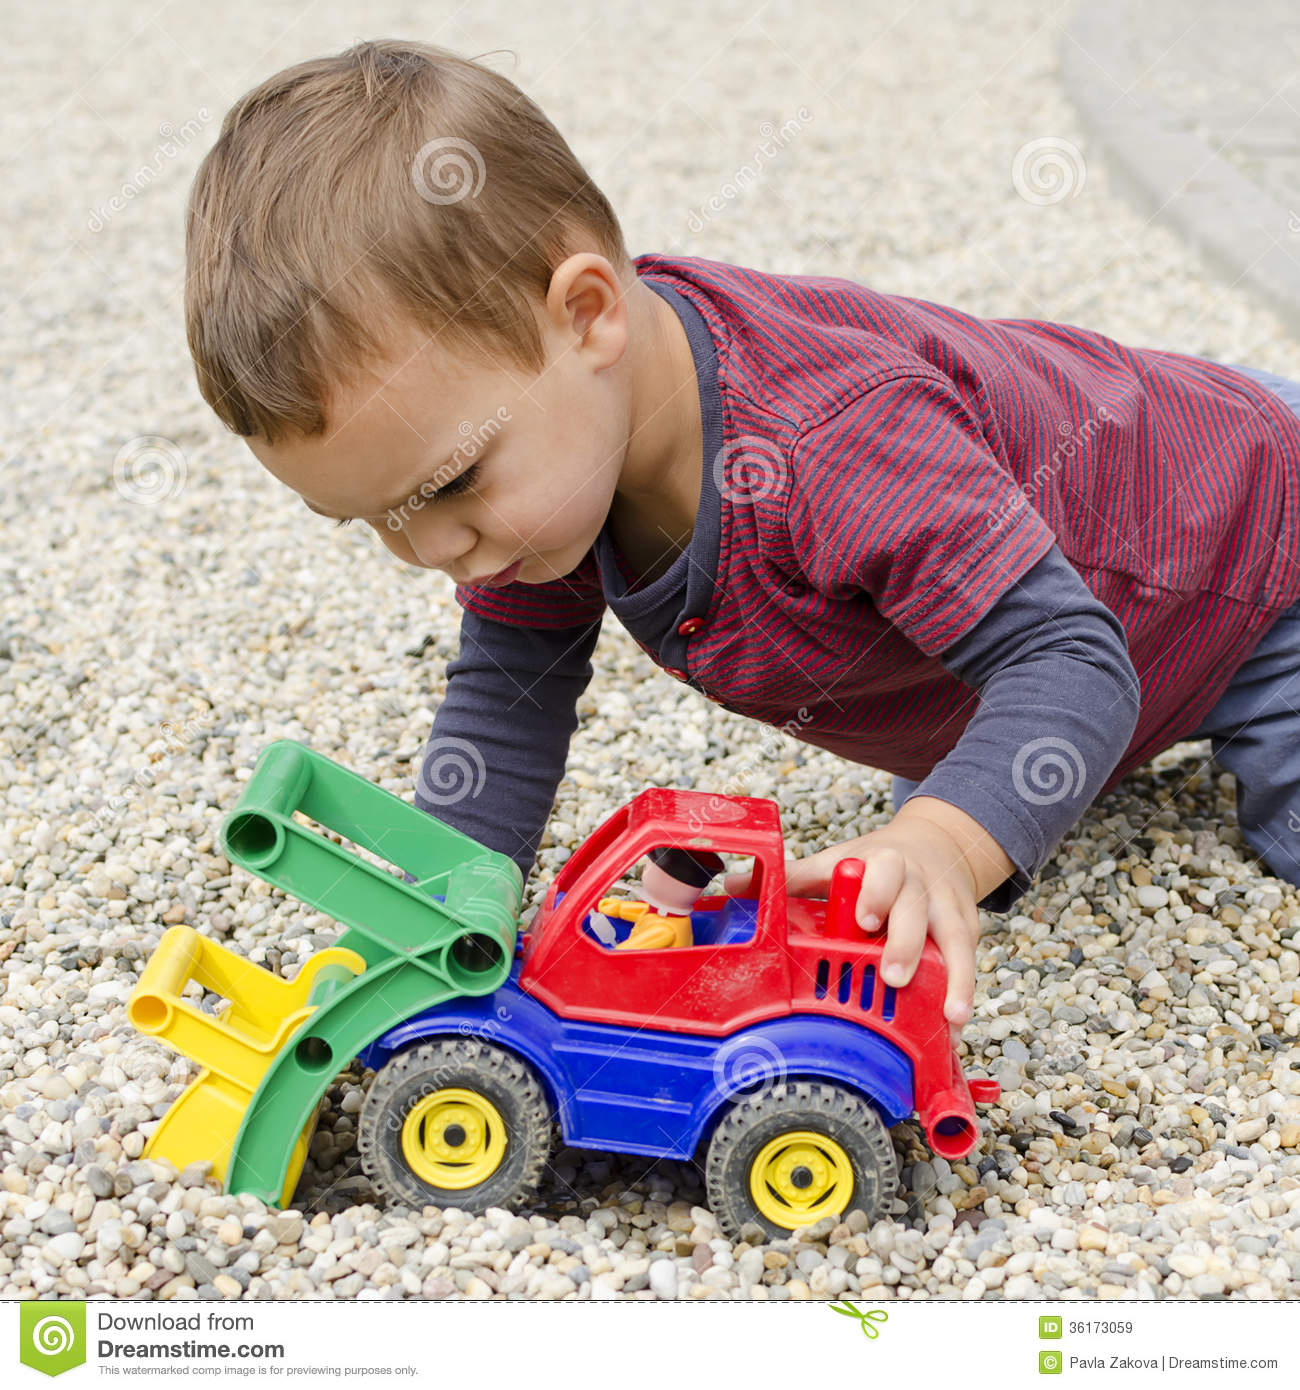 free punch home design download with Royalty Free Stock Images Child Palying Toy Car Toddler Boy Playing Plastic Digger Image36173059 on Royalty Free Stock Images Child Palying Toy Car Toddler Boy Playing Plastic Digger Image36173059 together with Boxing Gloves Icon Illustration likewise January Desktop Smartphone Backgrounds additionally Printable Bride Banner Instant Download Bridal further Hot Chocolate Neighbor Gift Tags.